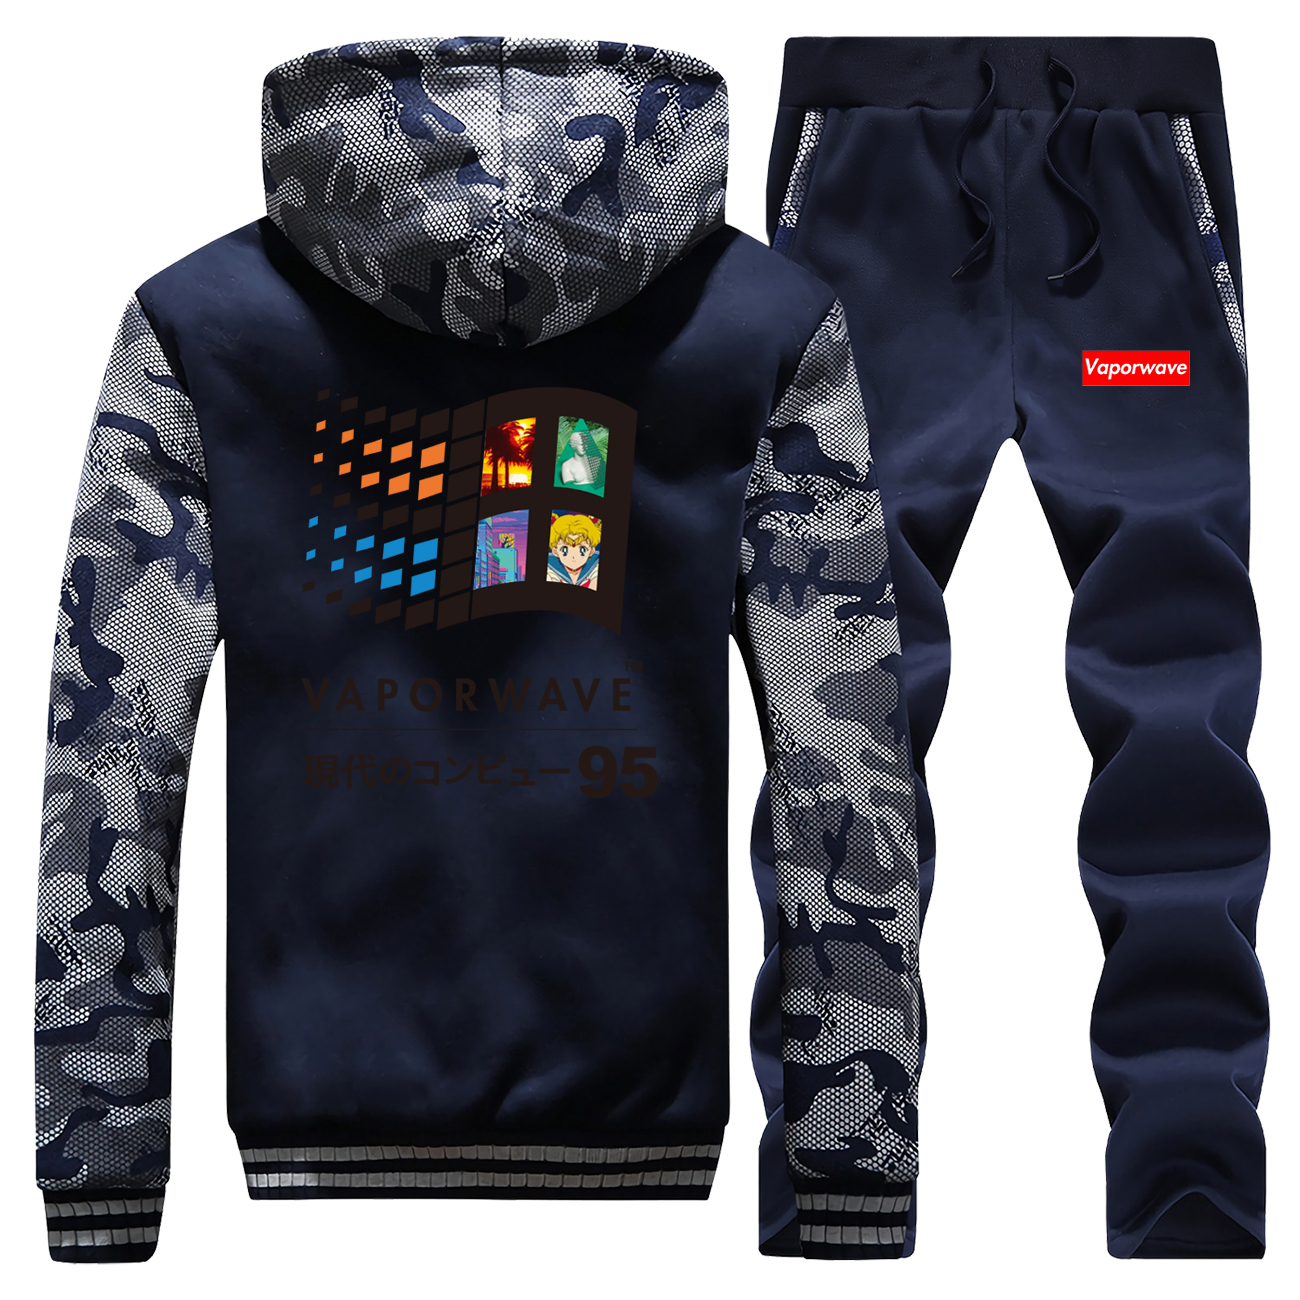 2019 Winter Vaporwave Vintage Retro Anime Aesthetic Warm Jackets Hoody Coat Thick Suit Camouflage Sportswear+2 Piece Set Pants